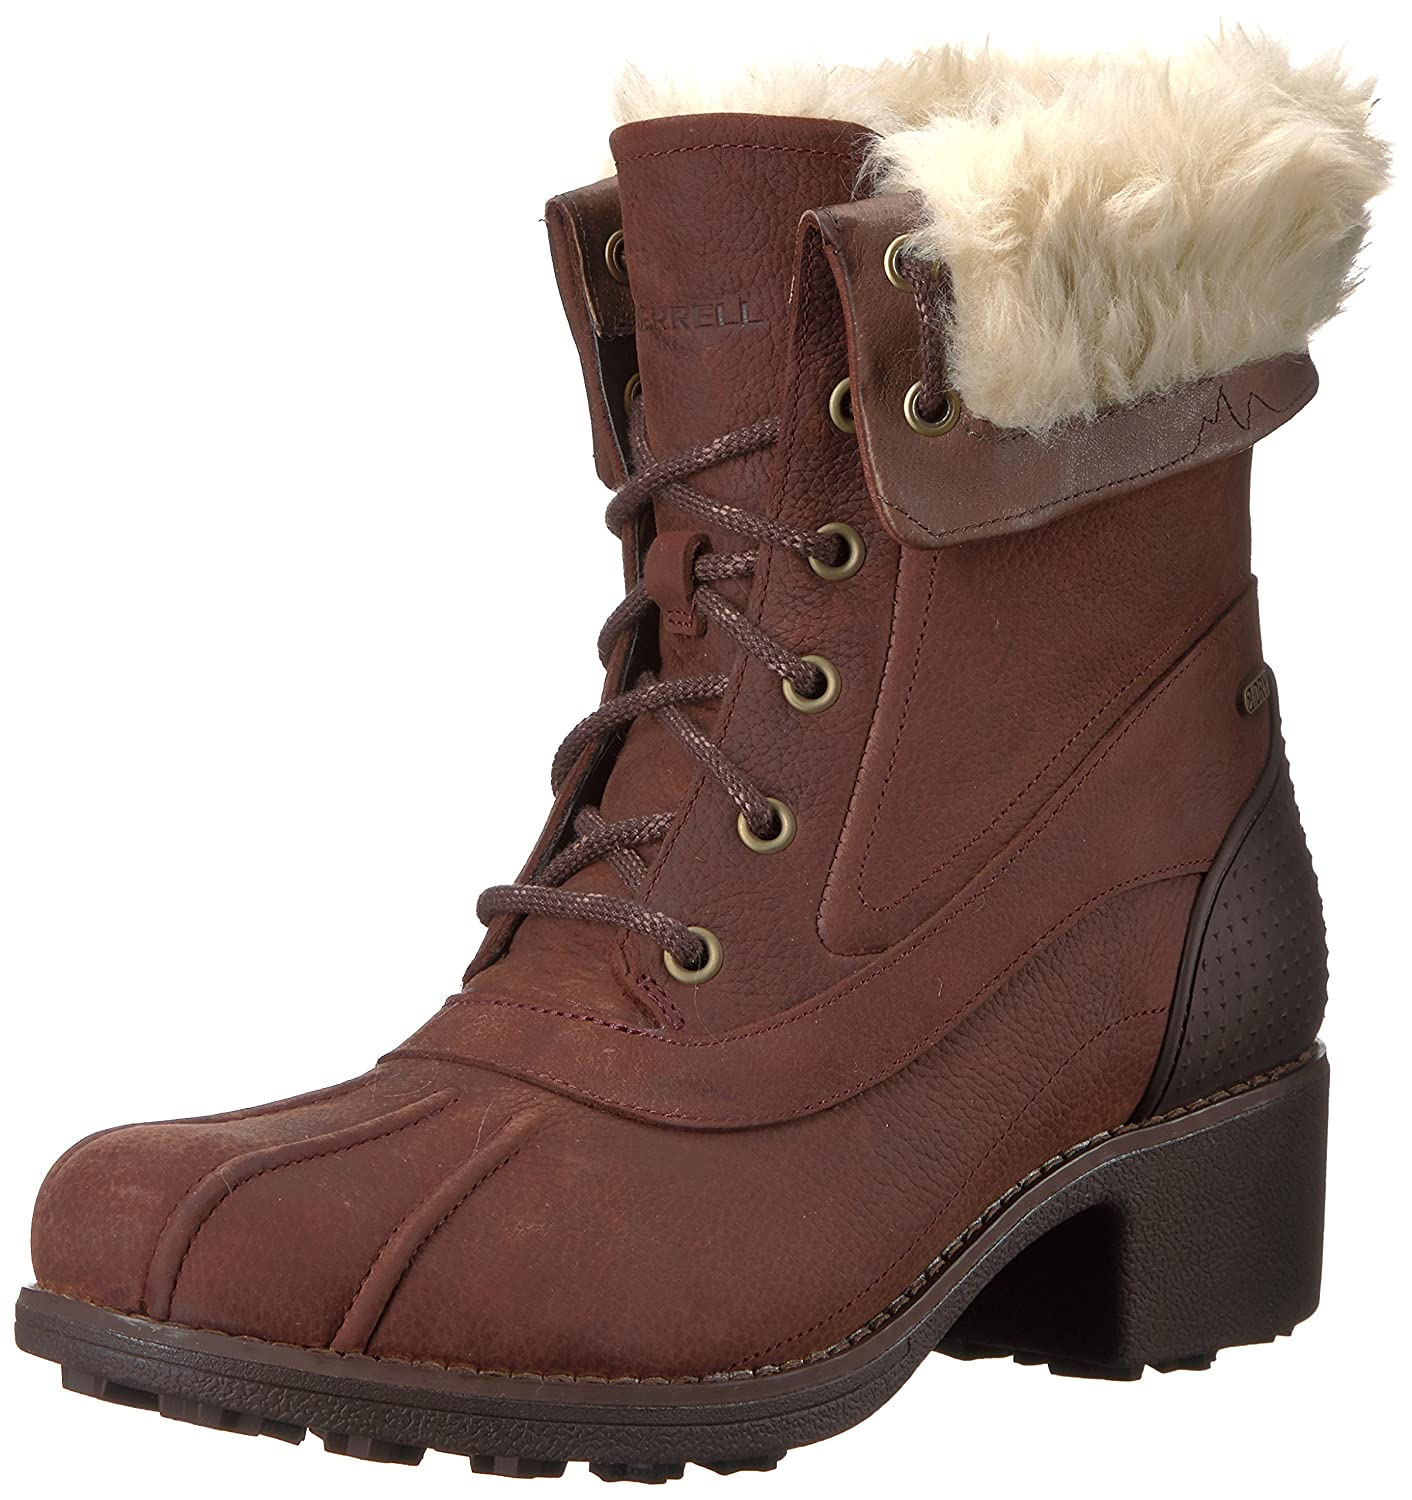 Merrell Women's Chateau Mid Lace Polar Waterproof Snow Boot B01N7VAGRE 7 B(M) US|Brunette